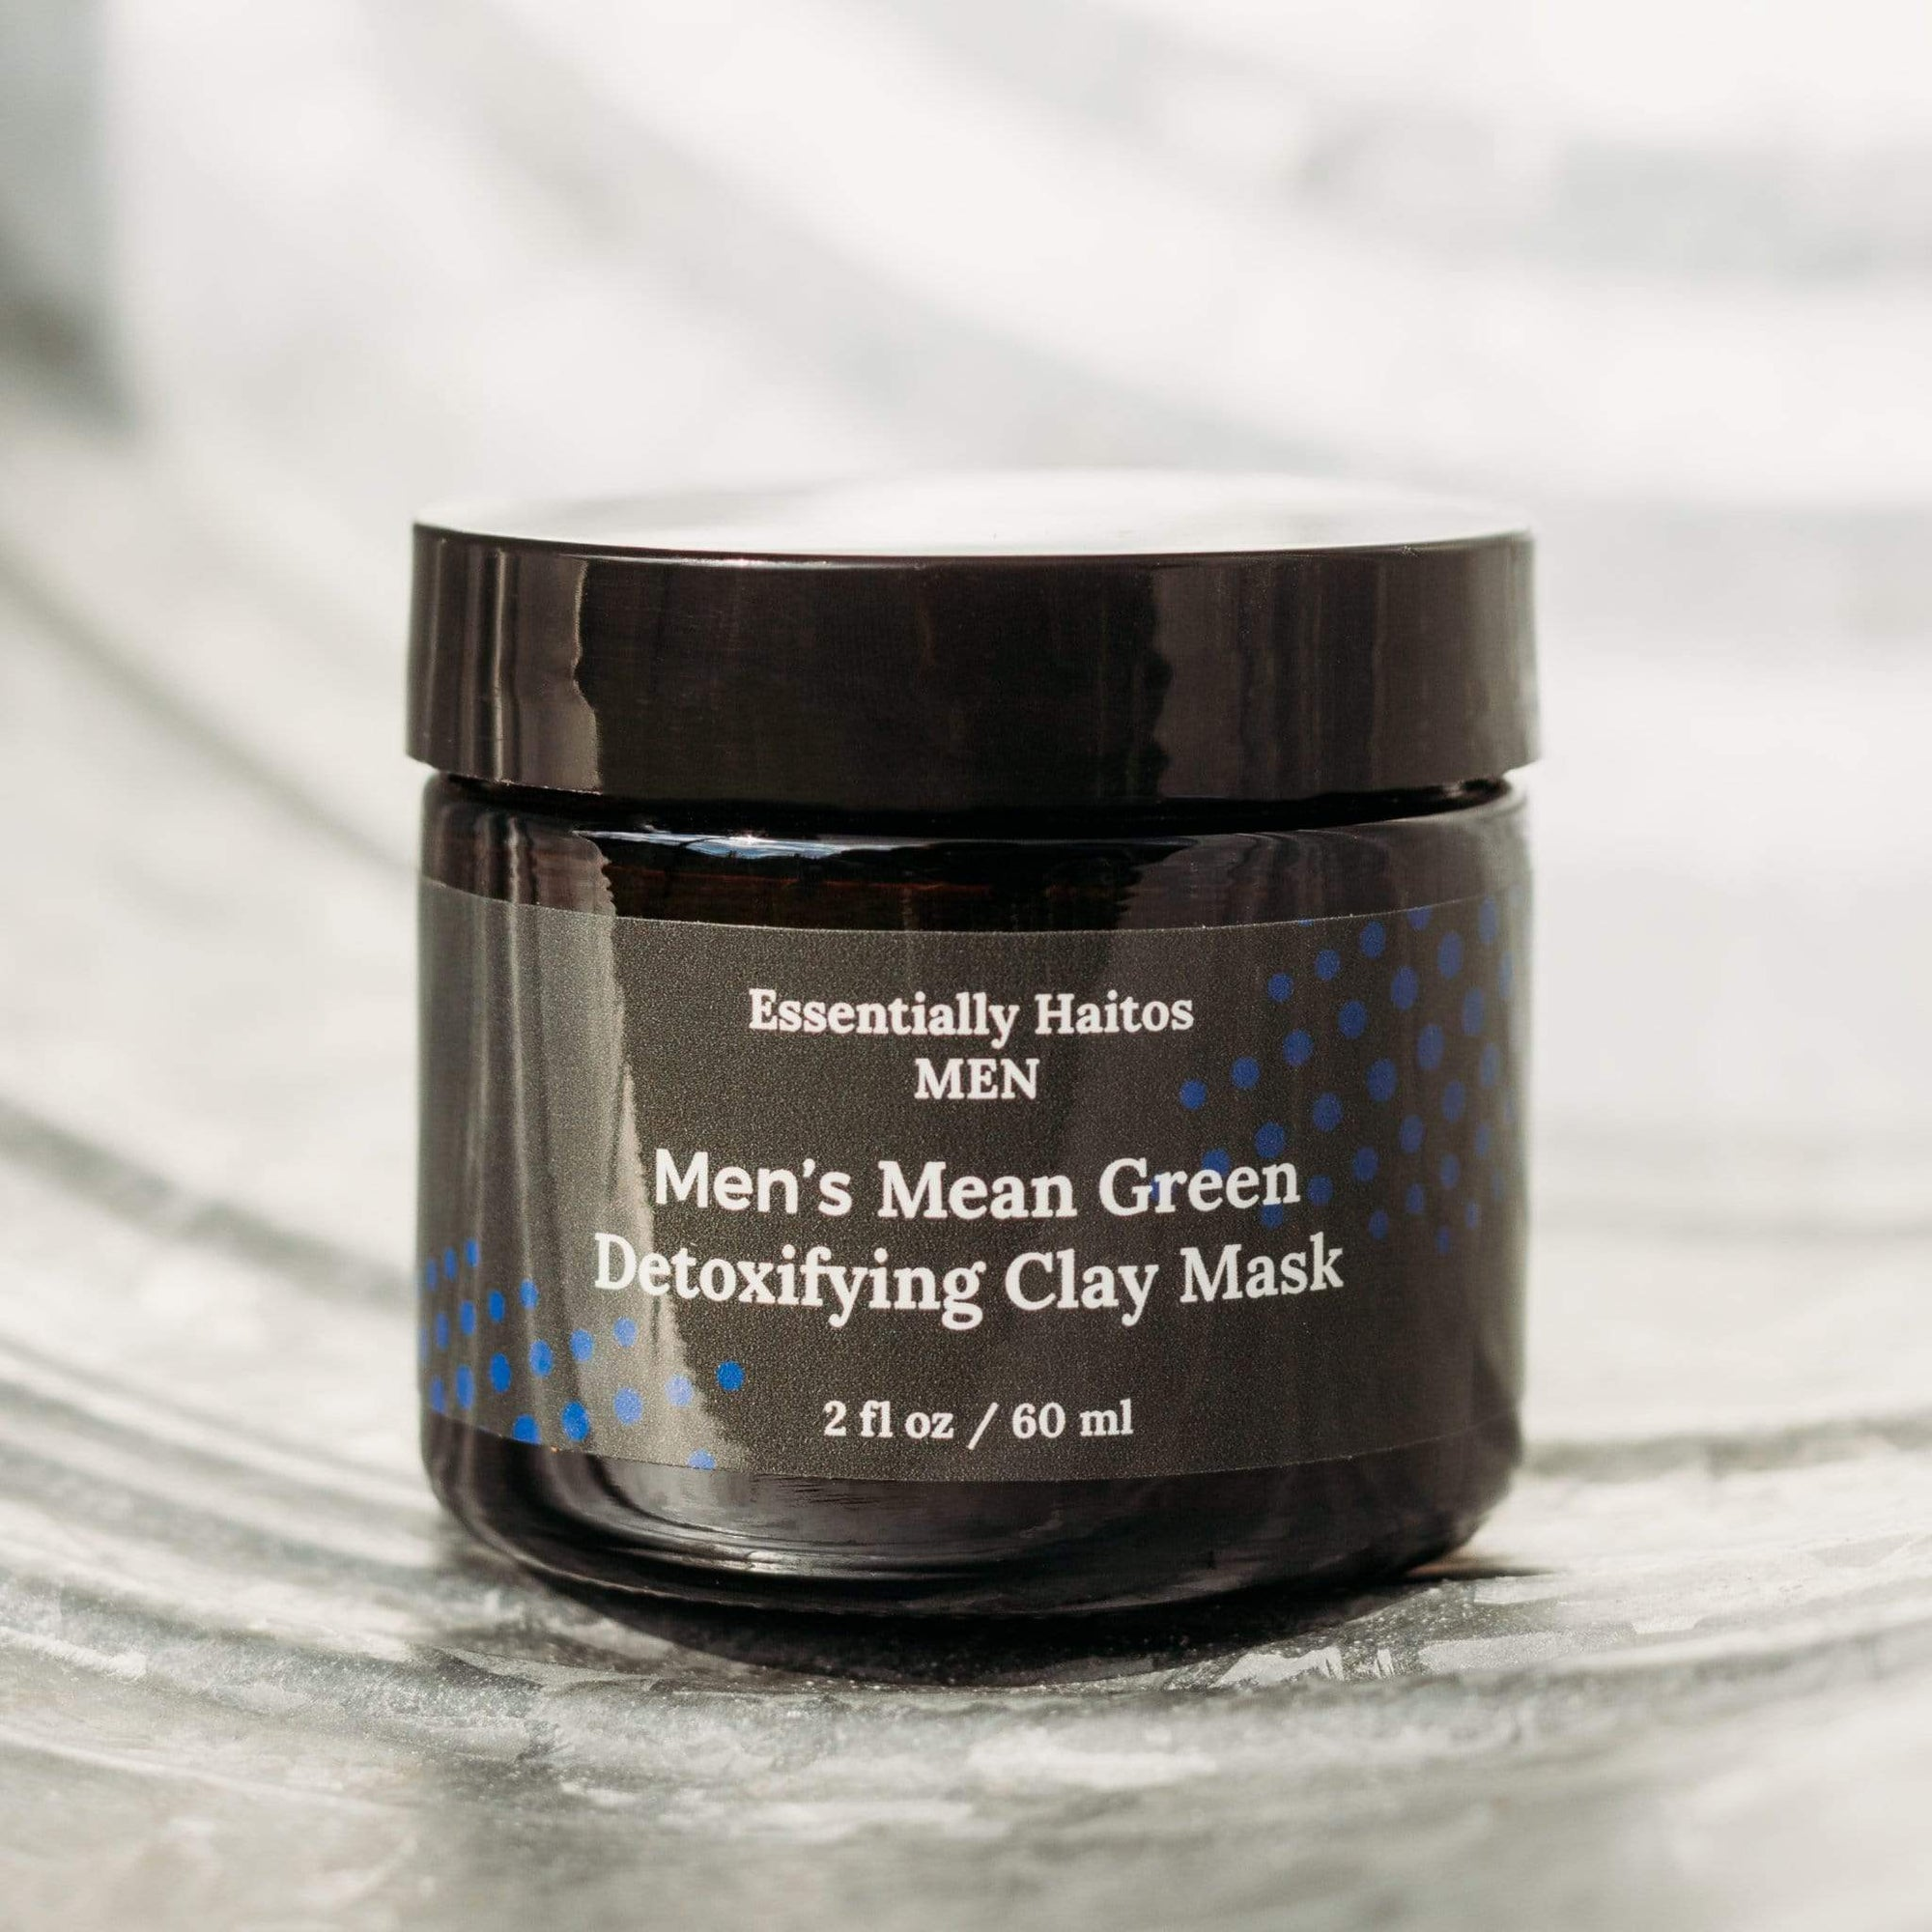 Men's Mean Green Detoxifying Clay Mask